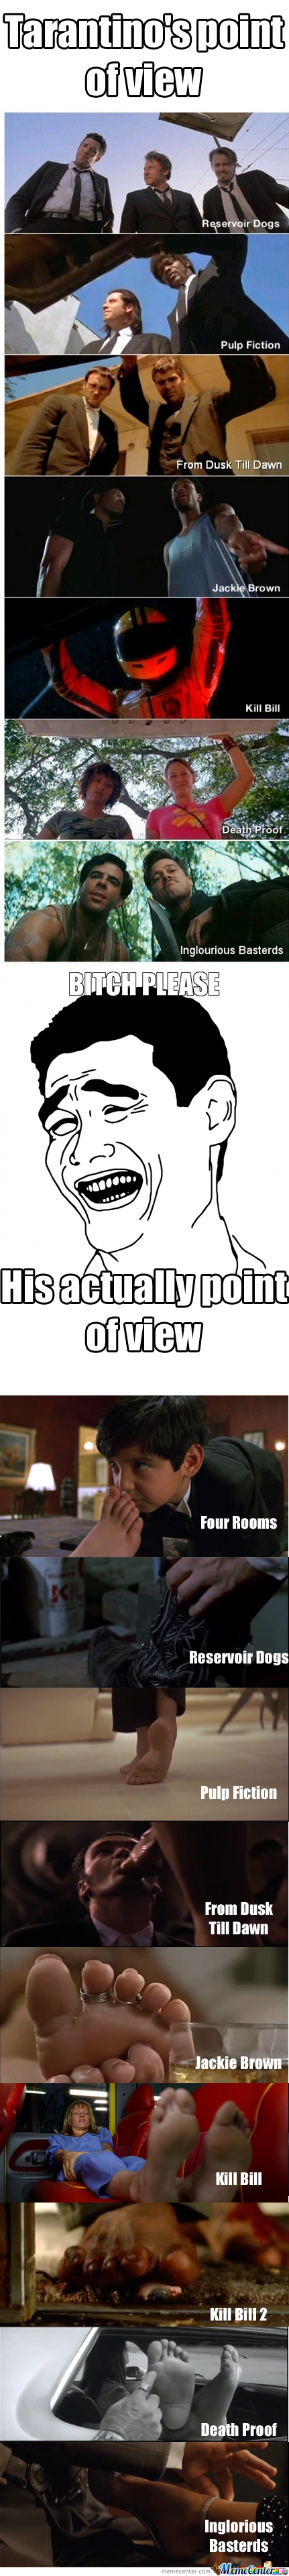 Tarantino's Actually Point Of View